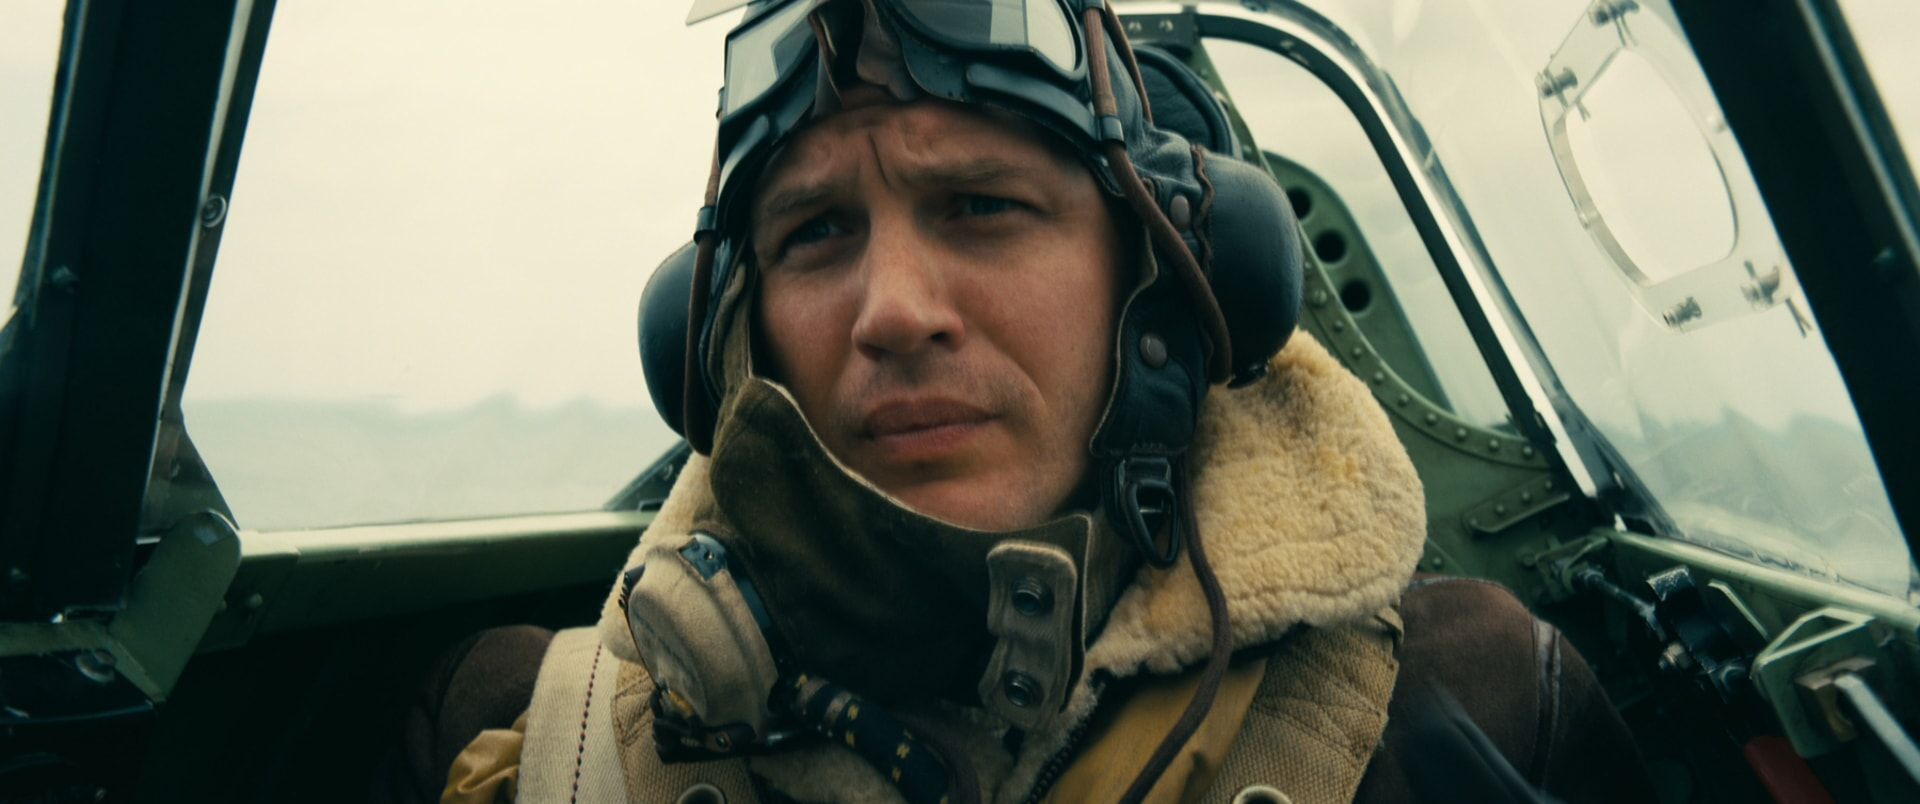 "TOM HARDY as Farrier in the Warner Bros. Pictures action thriller ""DUNKIRK,"" a Warner Bros. Pictures release."